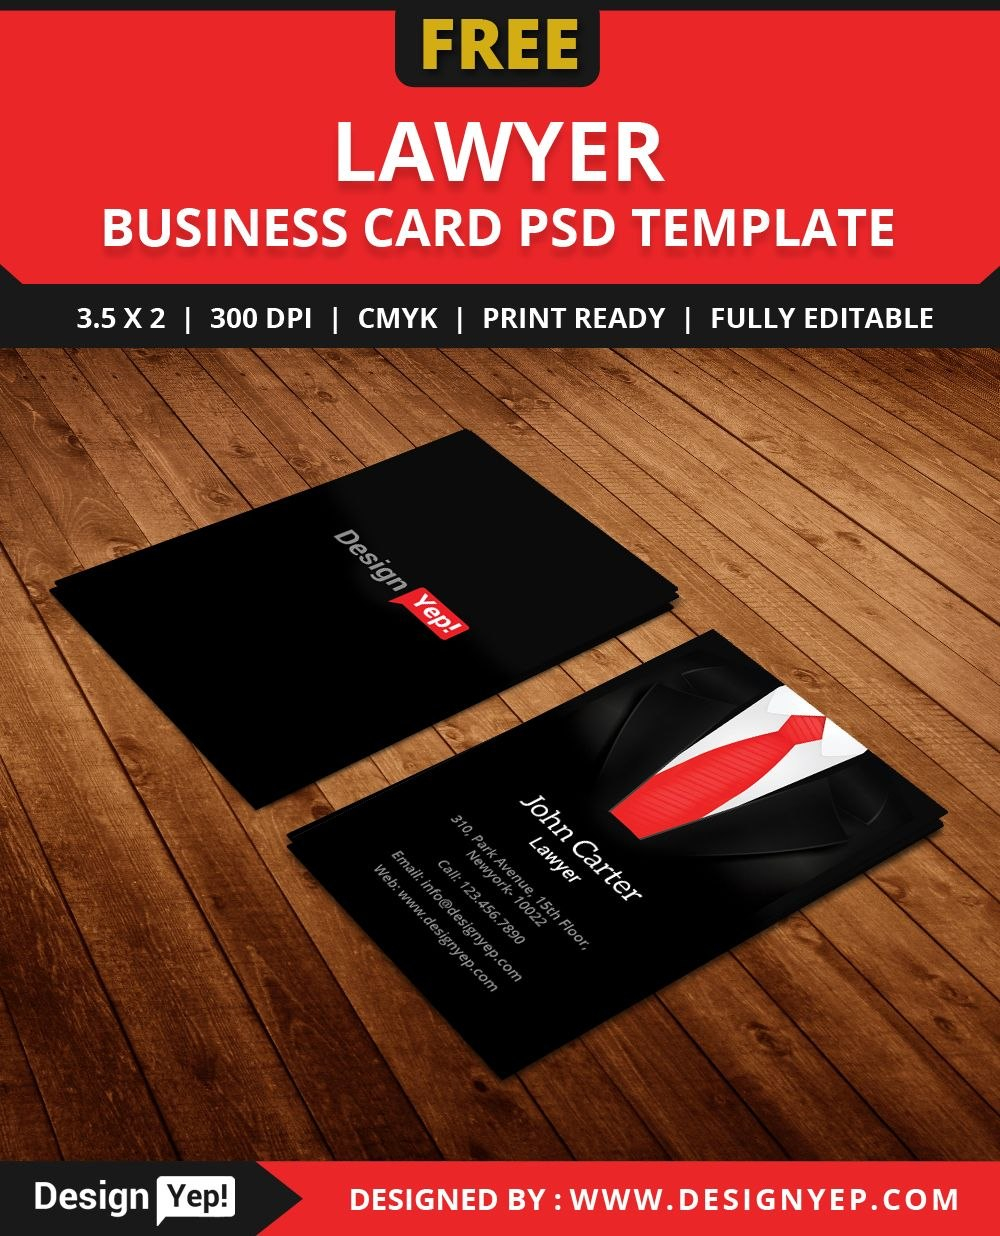 Freelawyerbusinesscardtemplatepsd  Free Business Card  Lawyer Within Legal Business Cards Templates Free